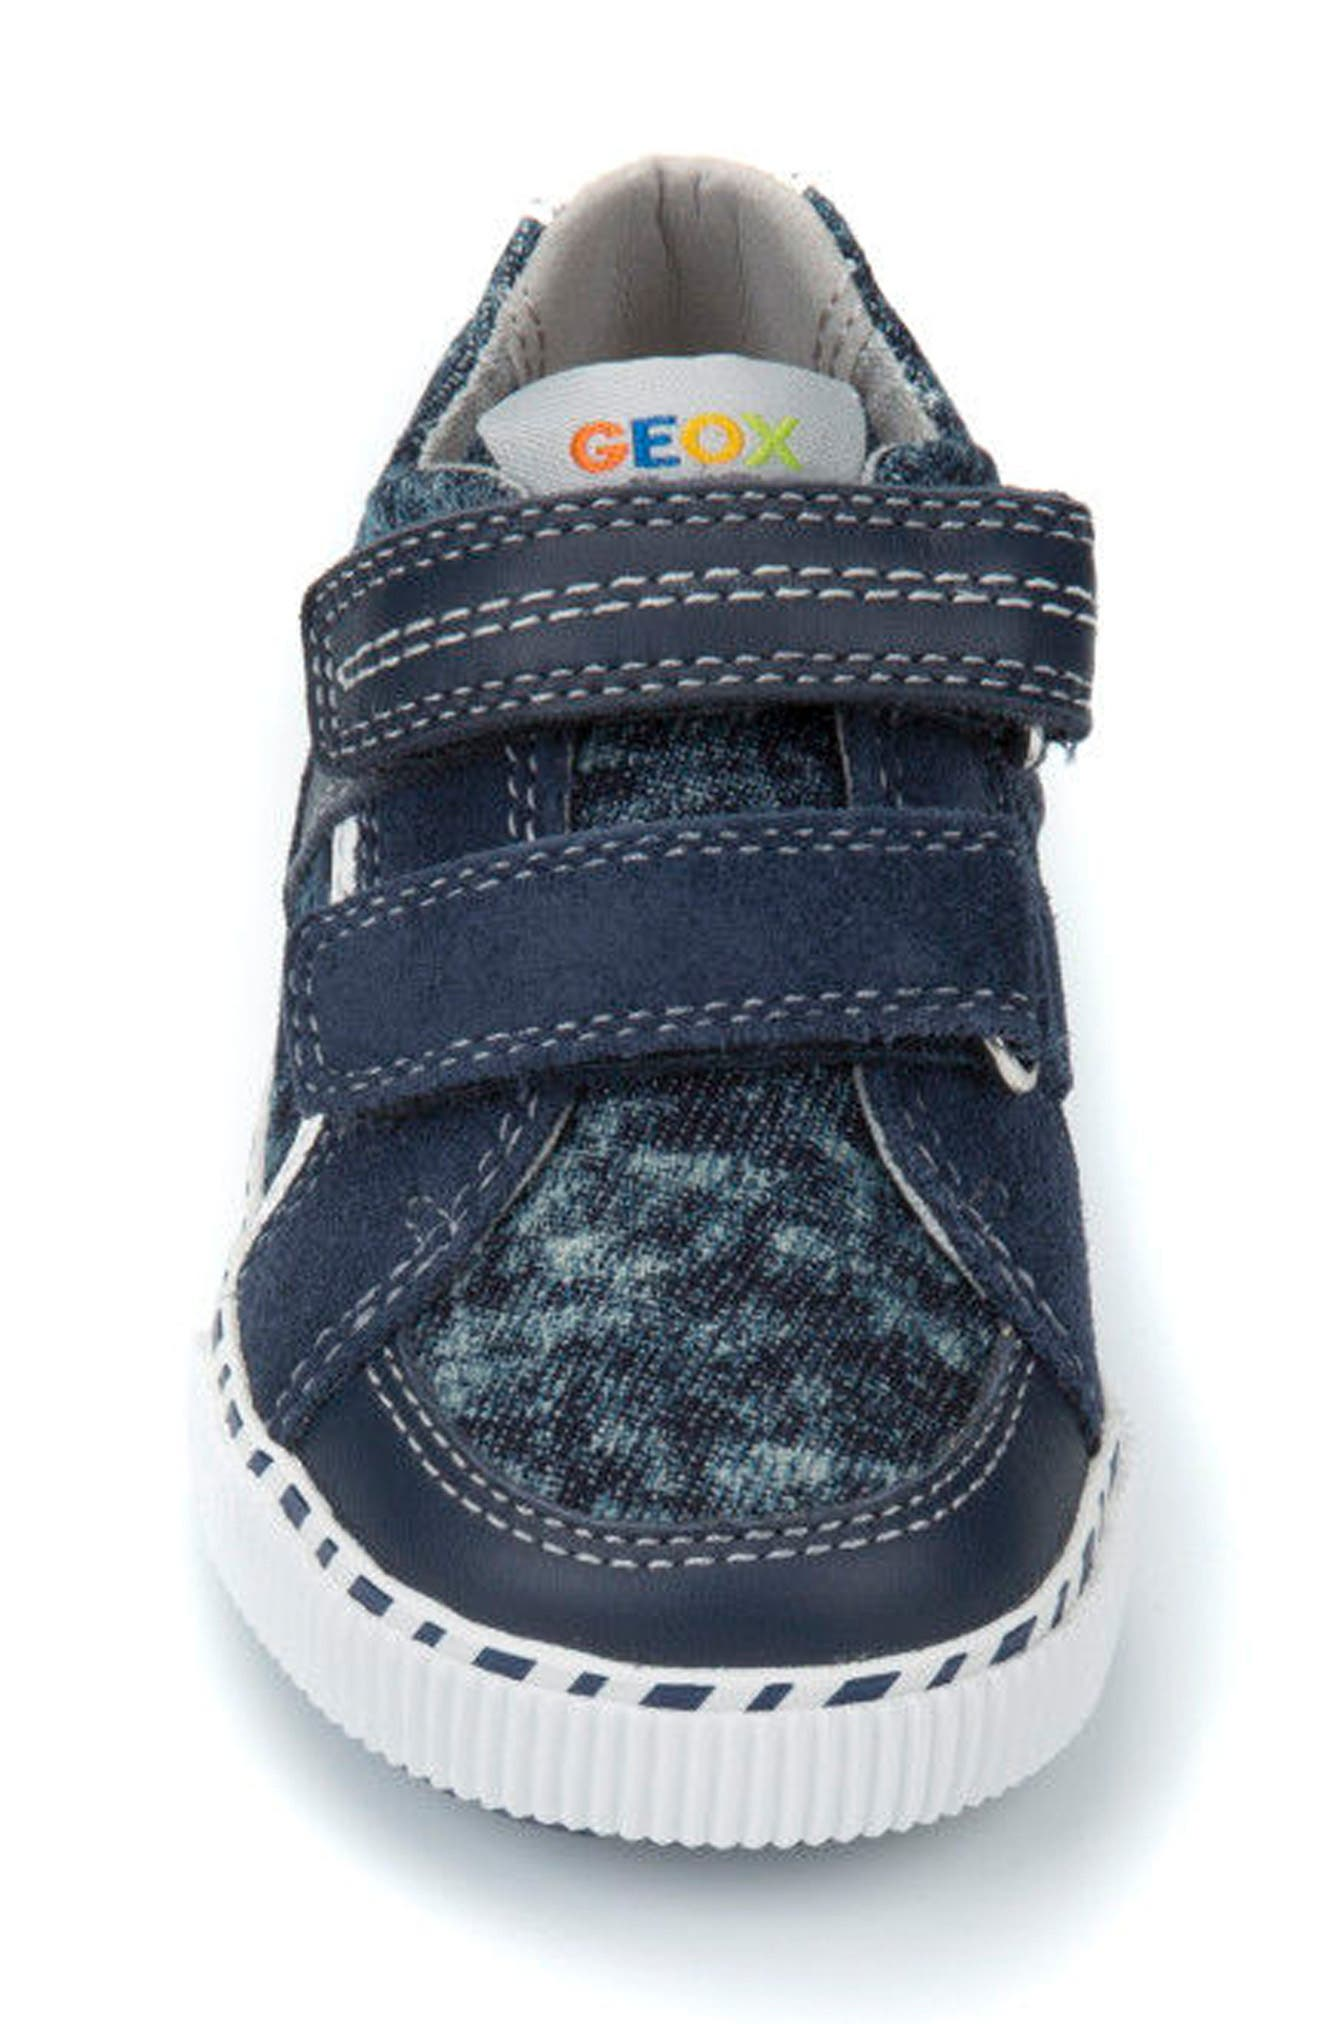 Kilwi Knit Sneaker,                             Alternate thumbnail 4, color,                             NAVY/ WHITE